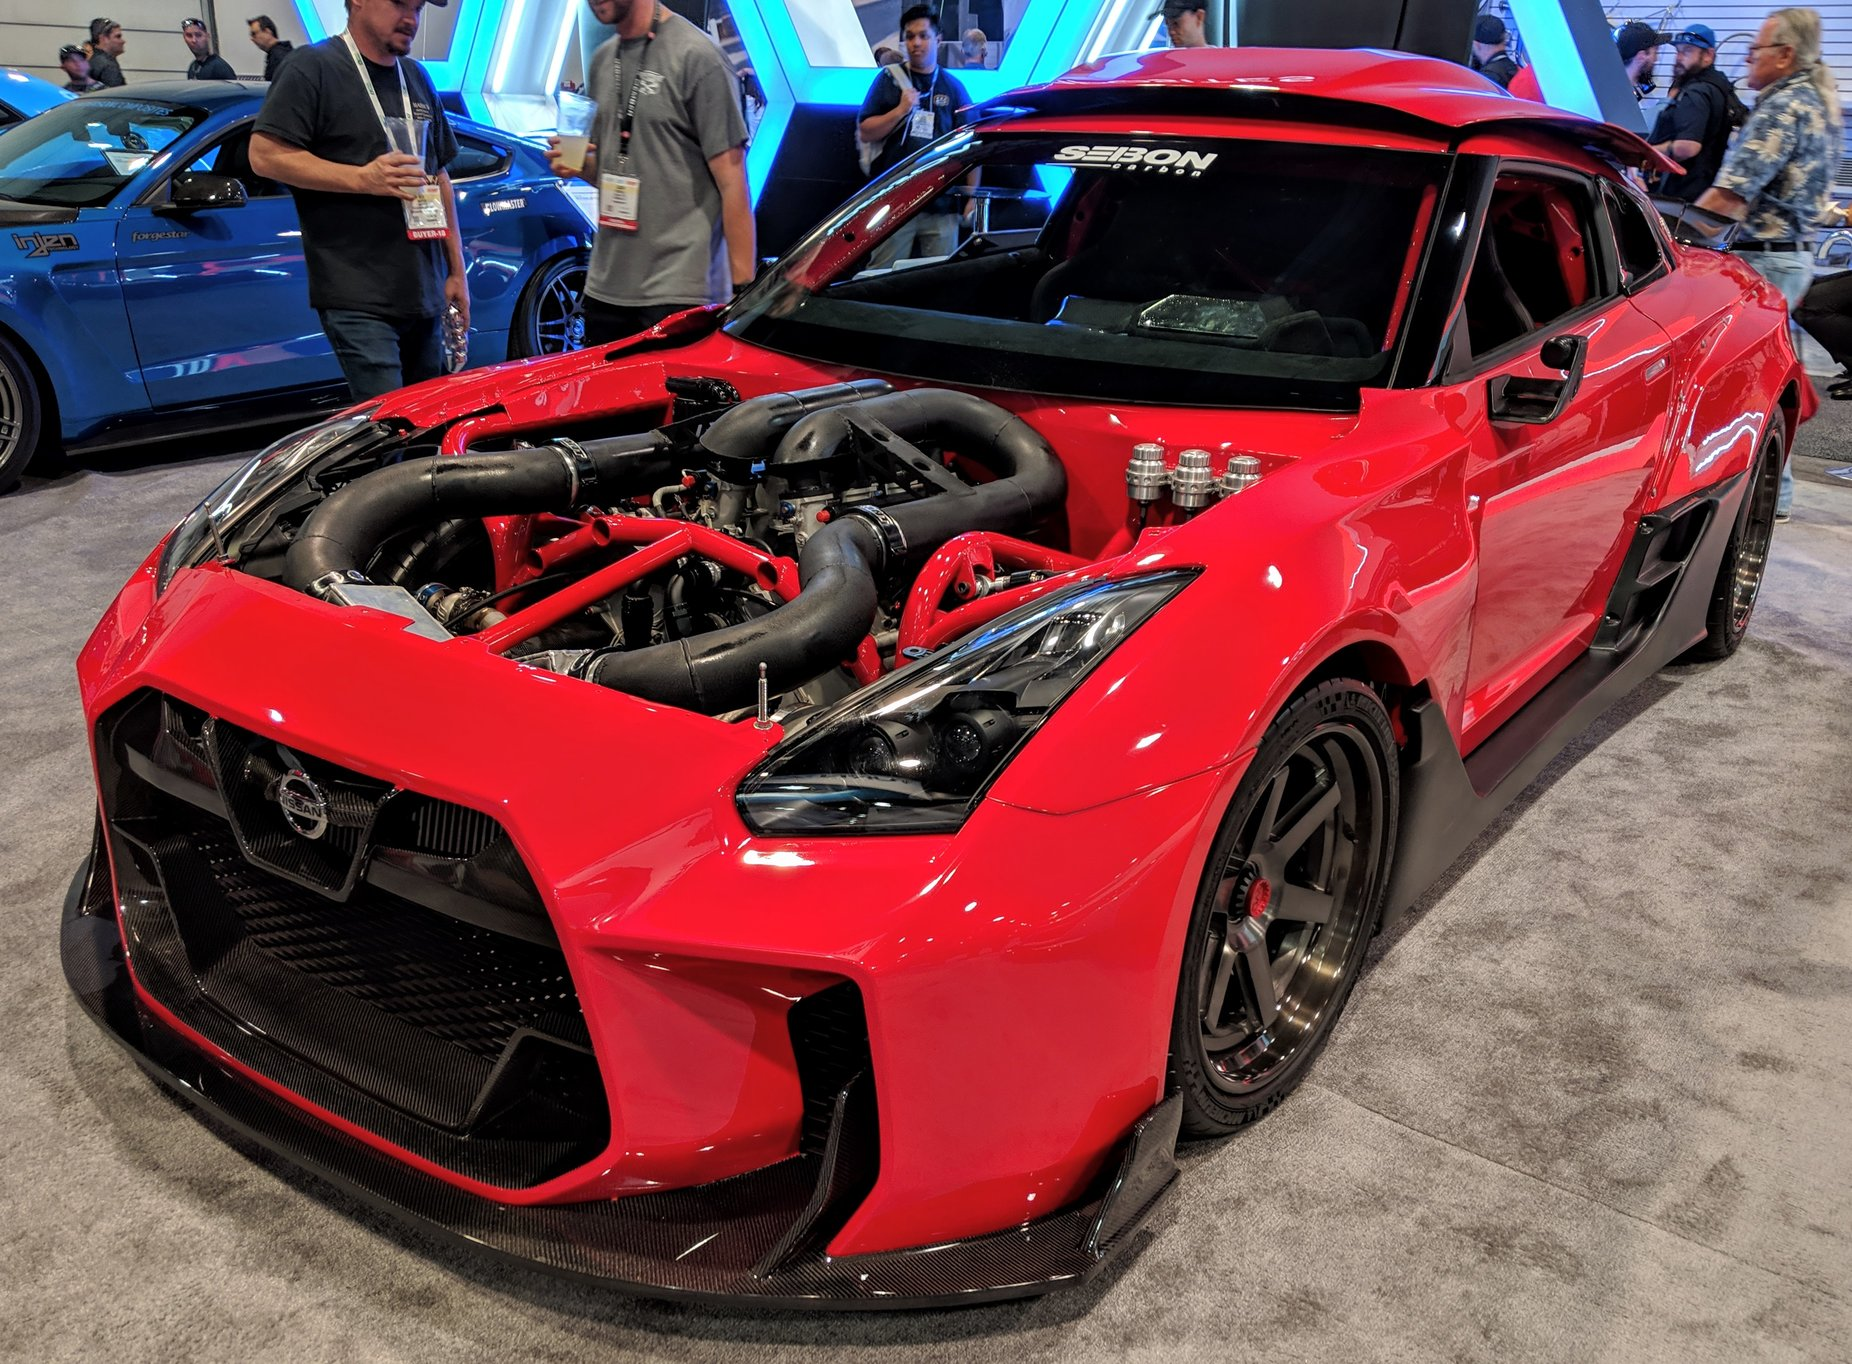 R35Hundred Design's Nissan GT-R specZERO with a Daytona Prototype Nissan 45 V8 racing engine at SEMA 2018